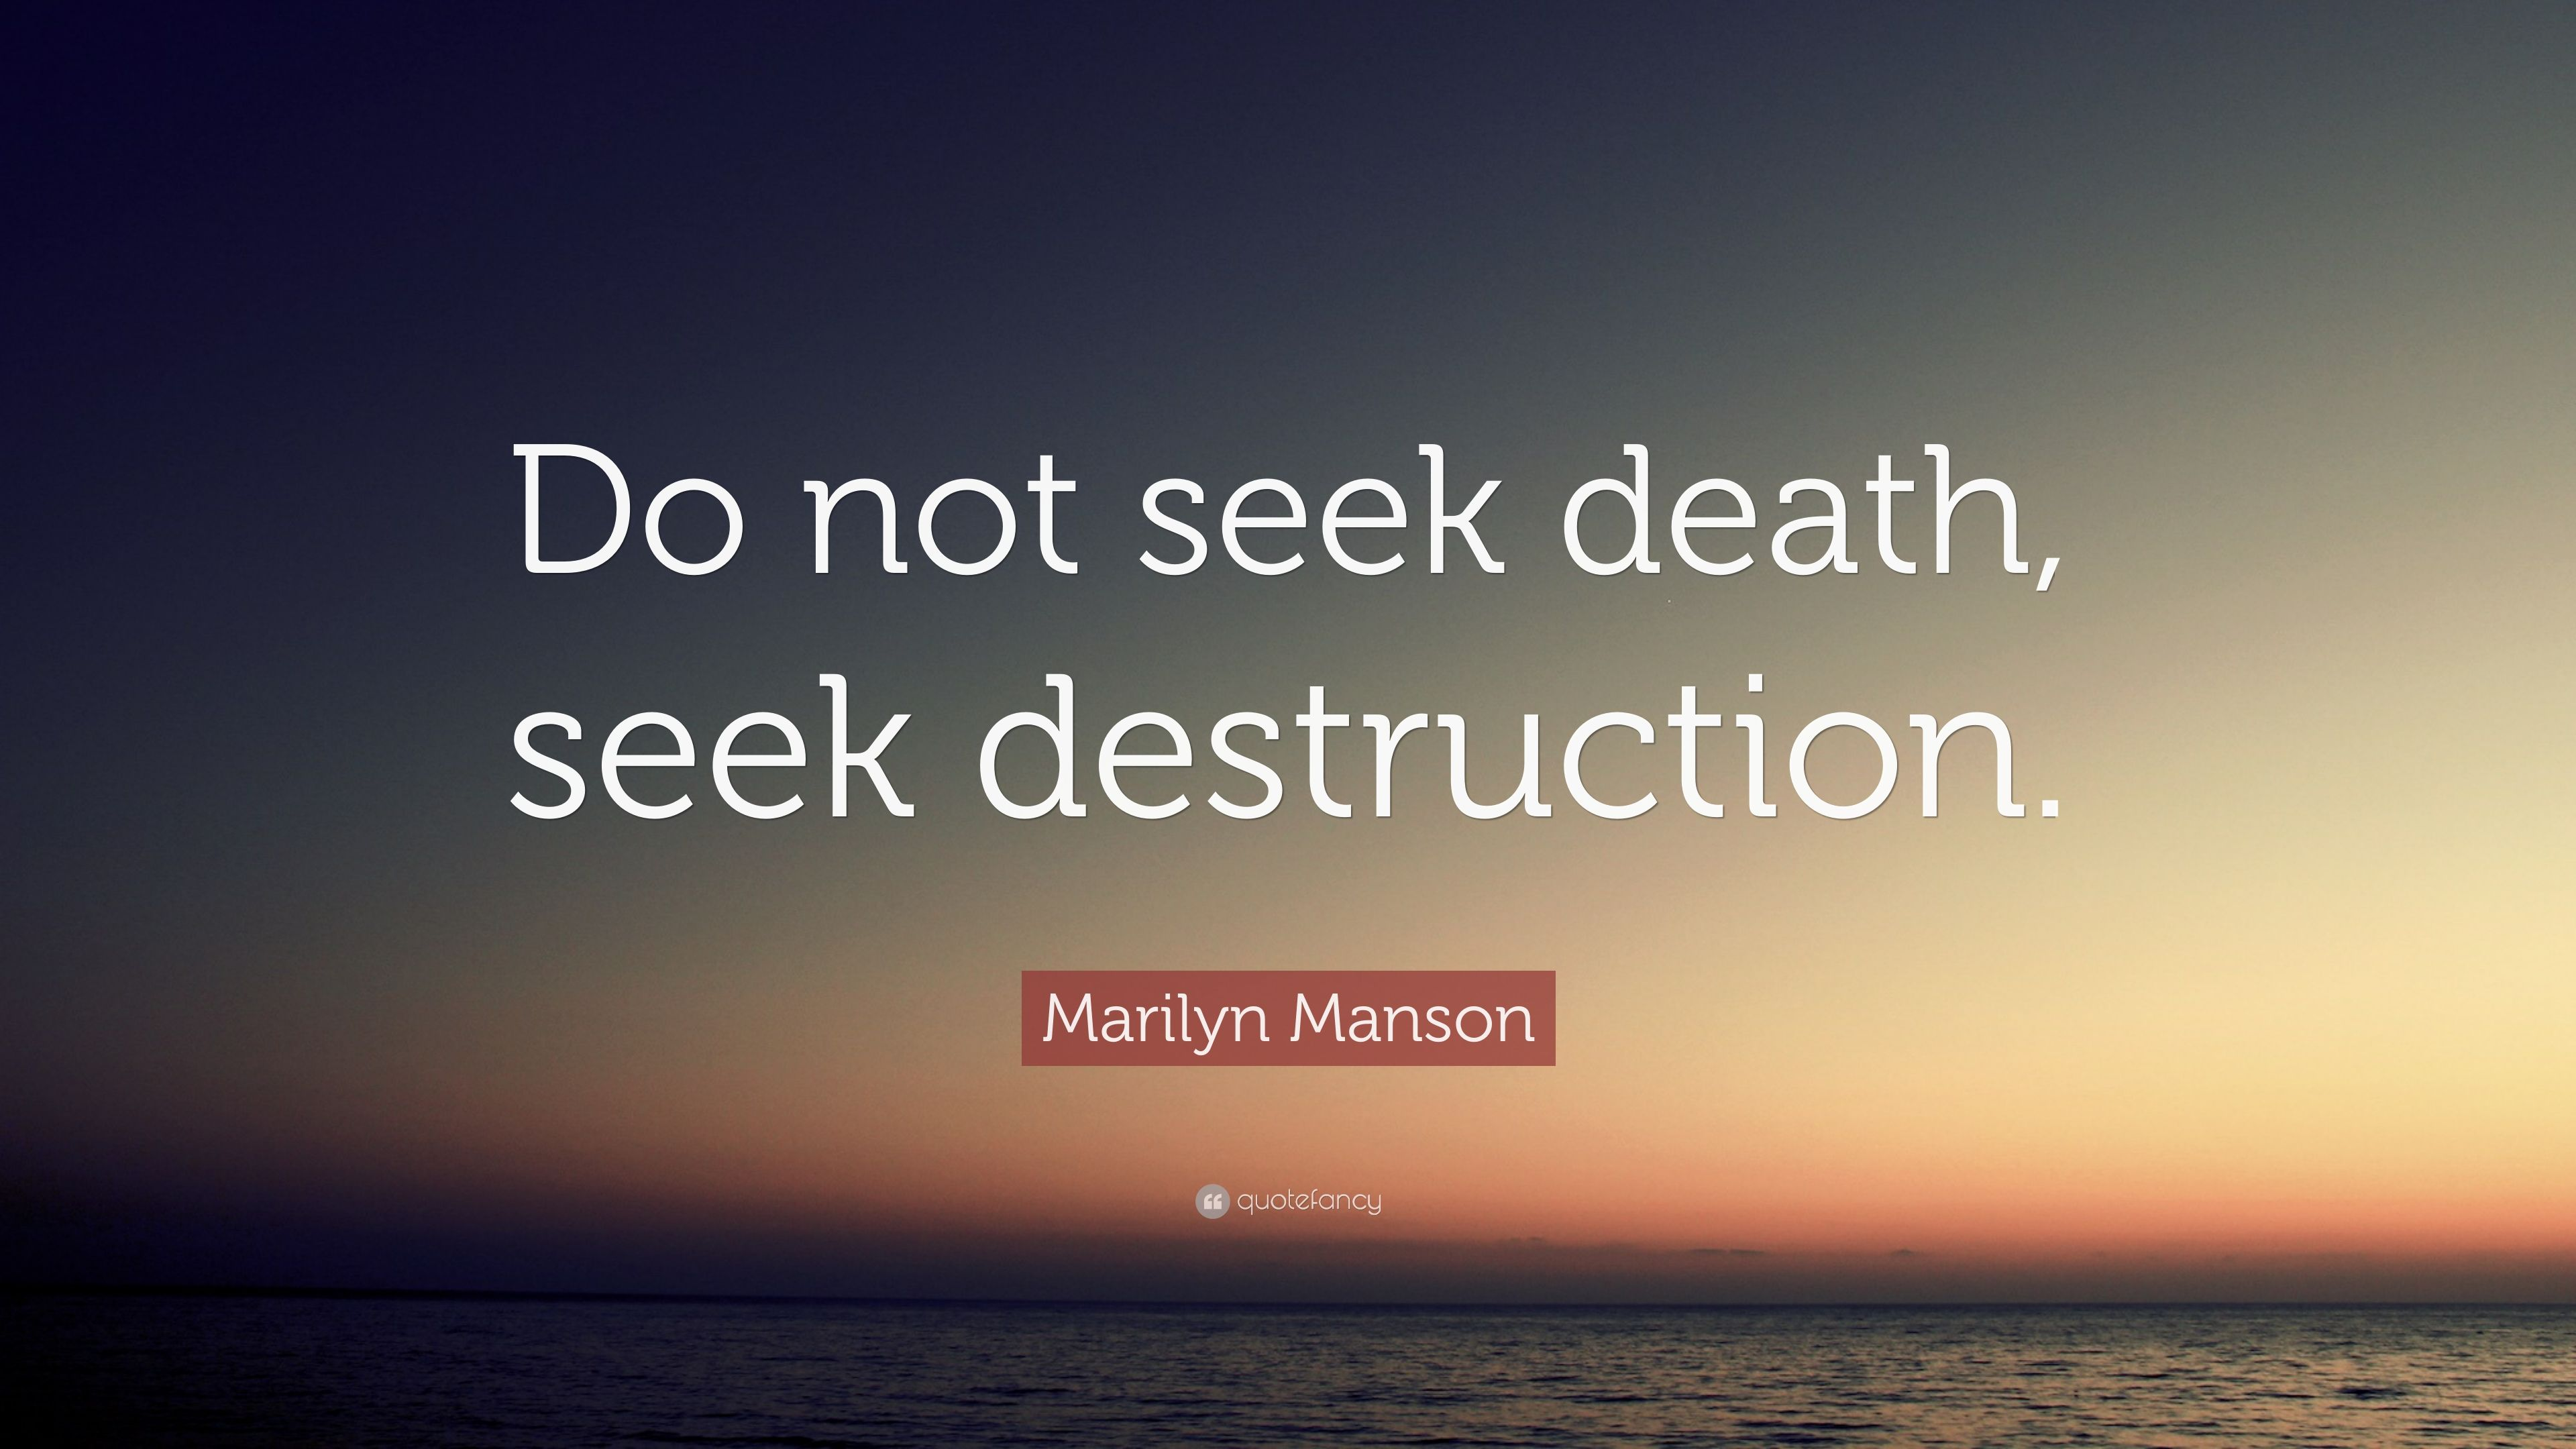 Exceptionnel Marilyn Manson Quote: U201cDo Not Seek Death, Seek Destruction.u201d